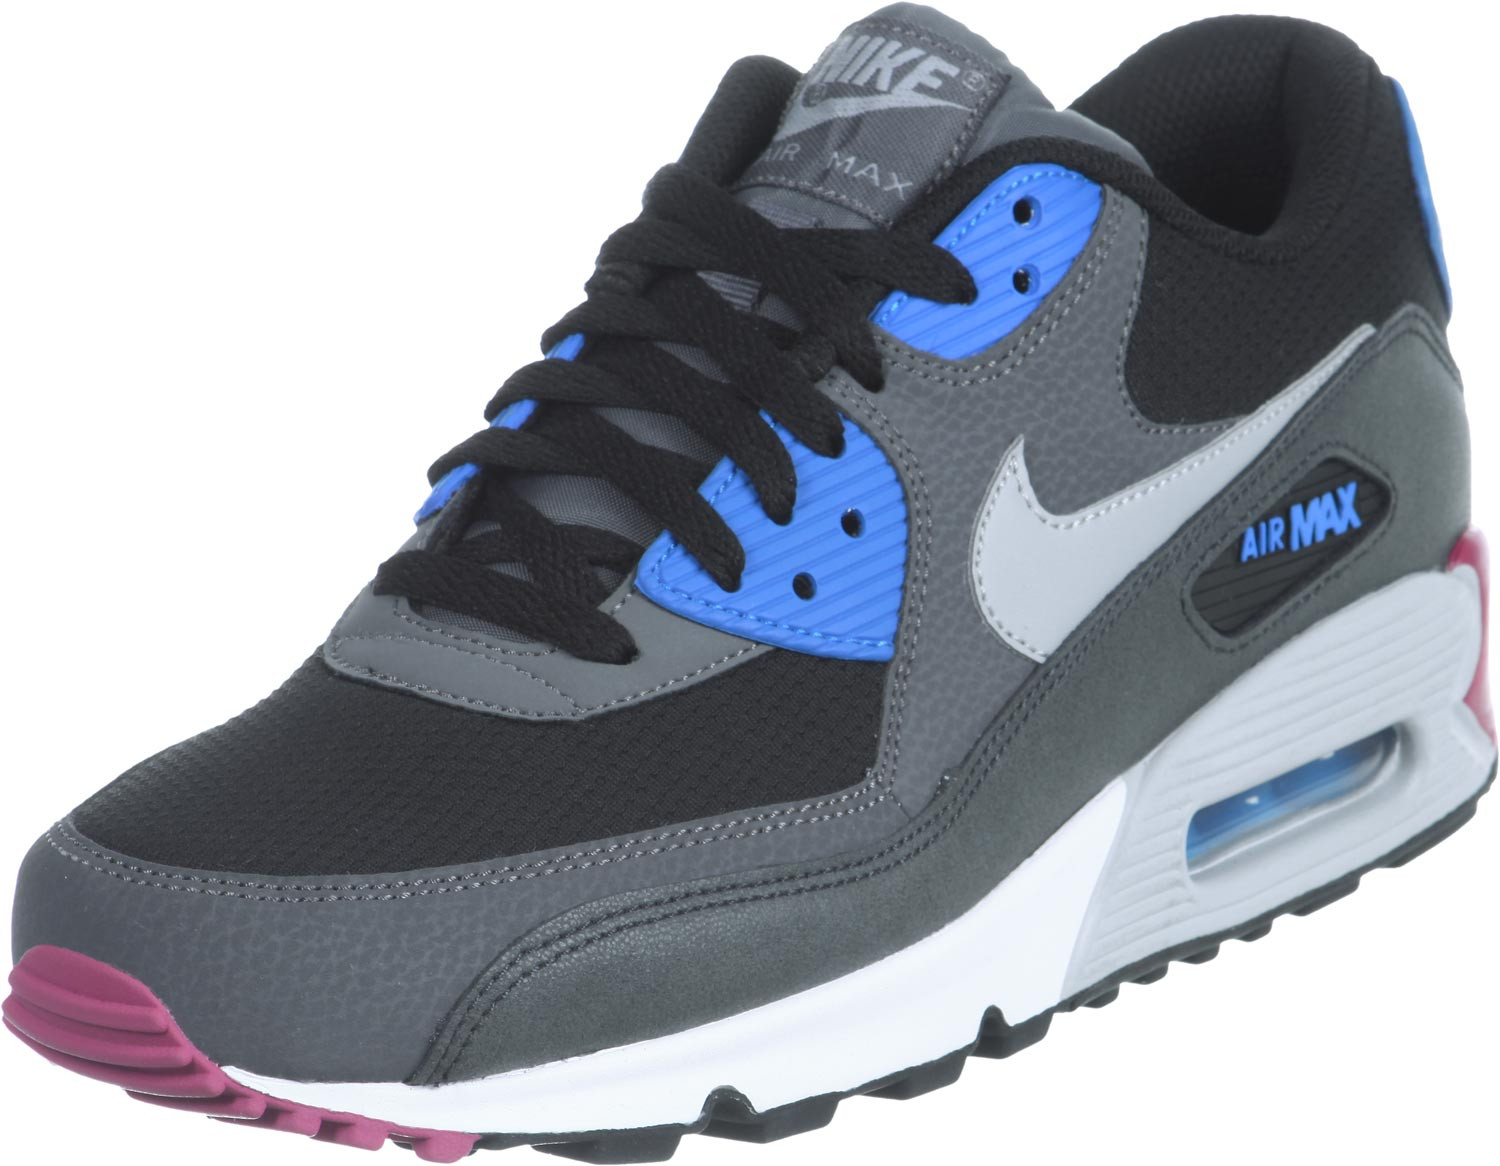 Air Max 90 Essential Impresionante Nike Air Max 90 Essential Schuhe Schwarz Grau Blau Im Of 36  Adorable Air Max 90 Essential